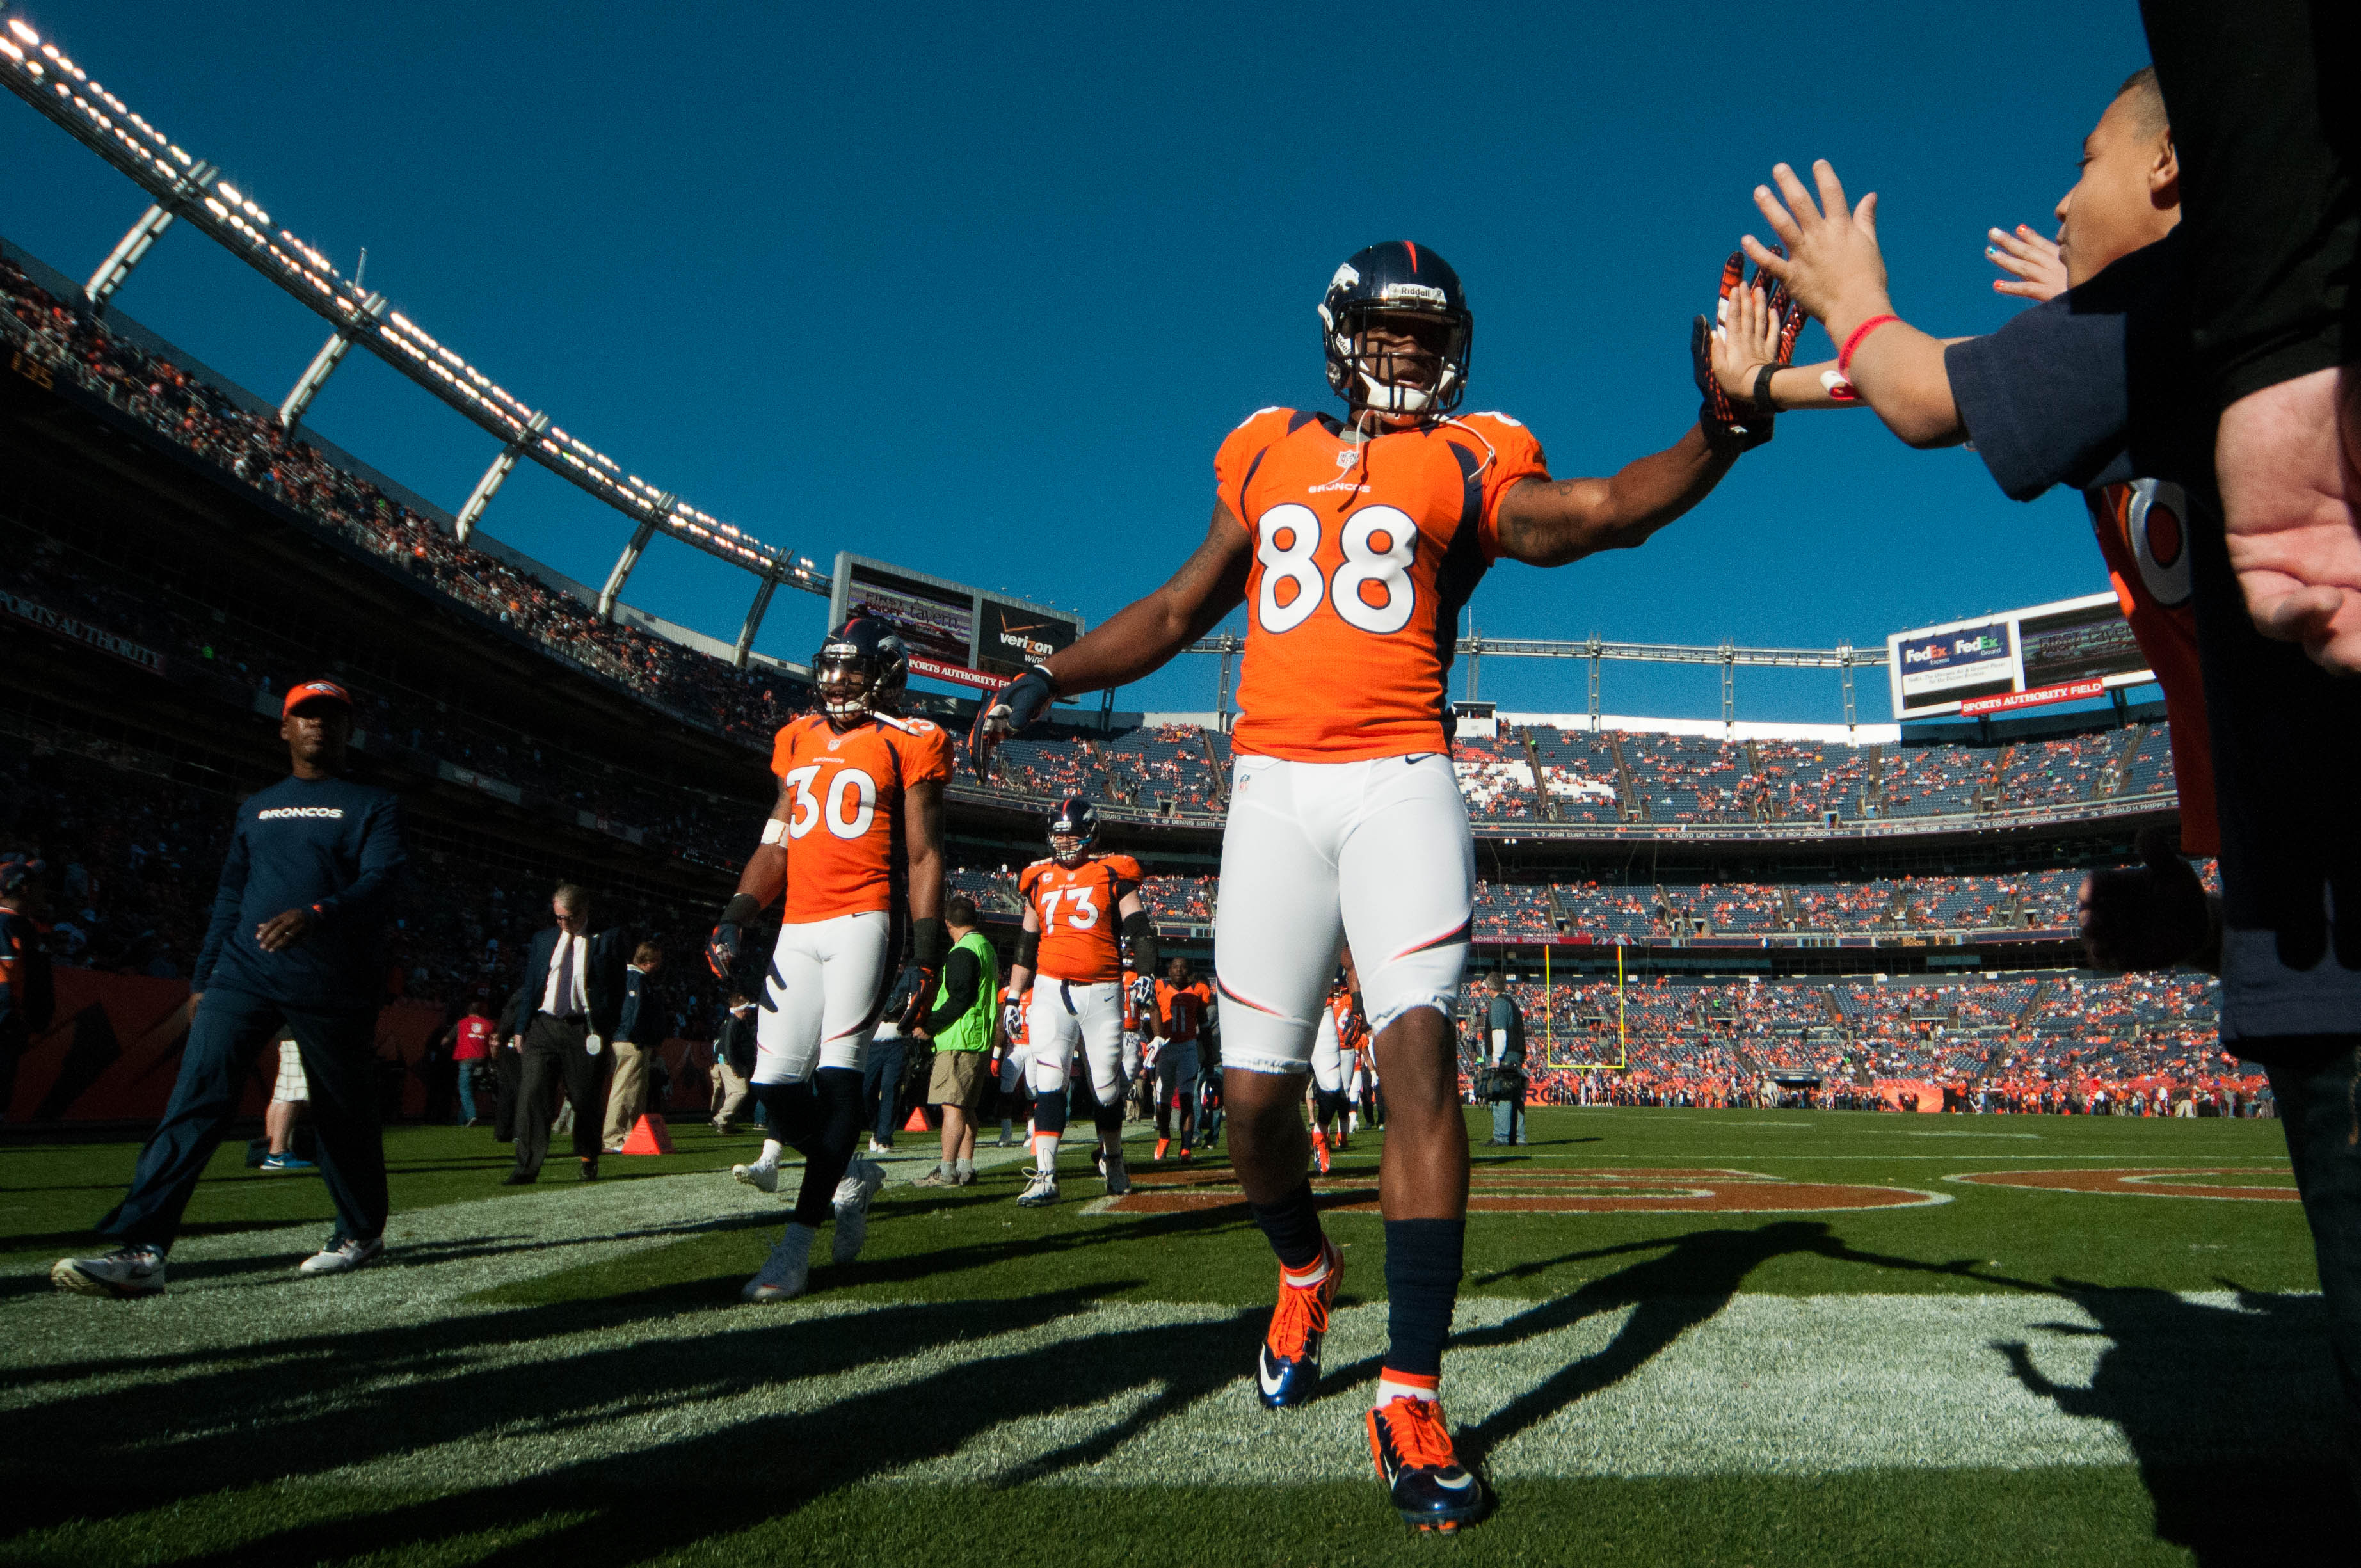 DENVER, CO - DECEMBER 2: Wide receiver Demaryius Thomas #88 of the Denver Broncos gives supporters high fives as he goes into the locker room after warming up before the game against the Tampa Bay Buccaneers at Sports Authority Field at Mile High on December 2, 2012 in Denver, Colorado. (Photo by Dustin Bradford/Getty Images)